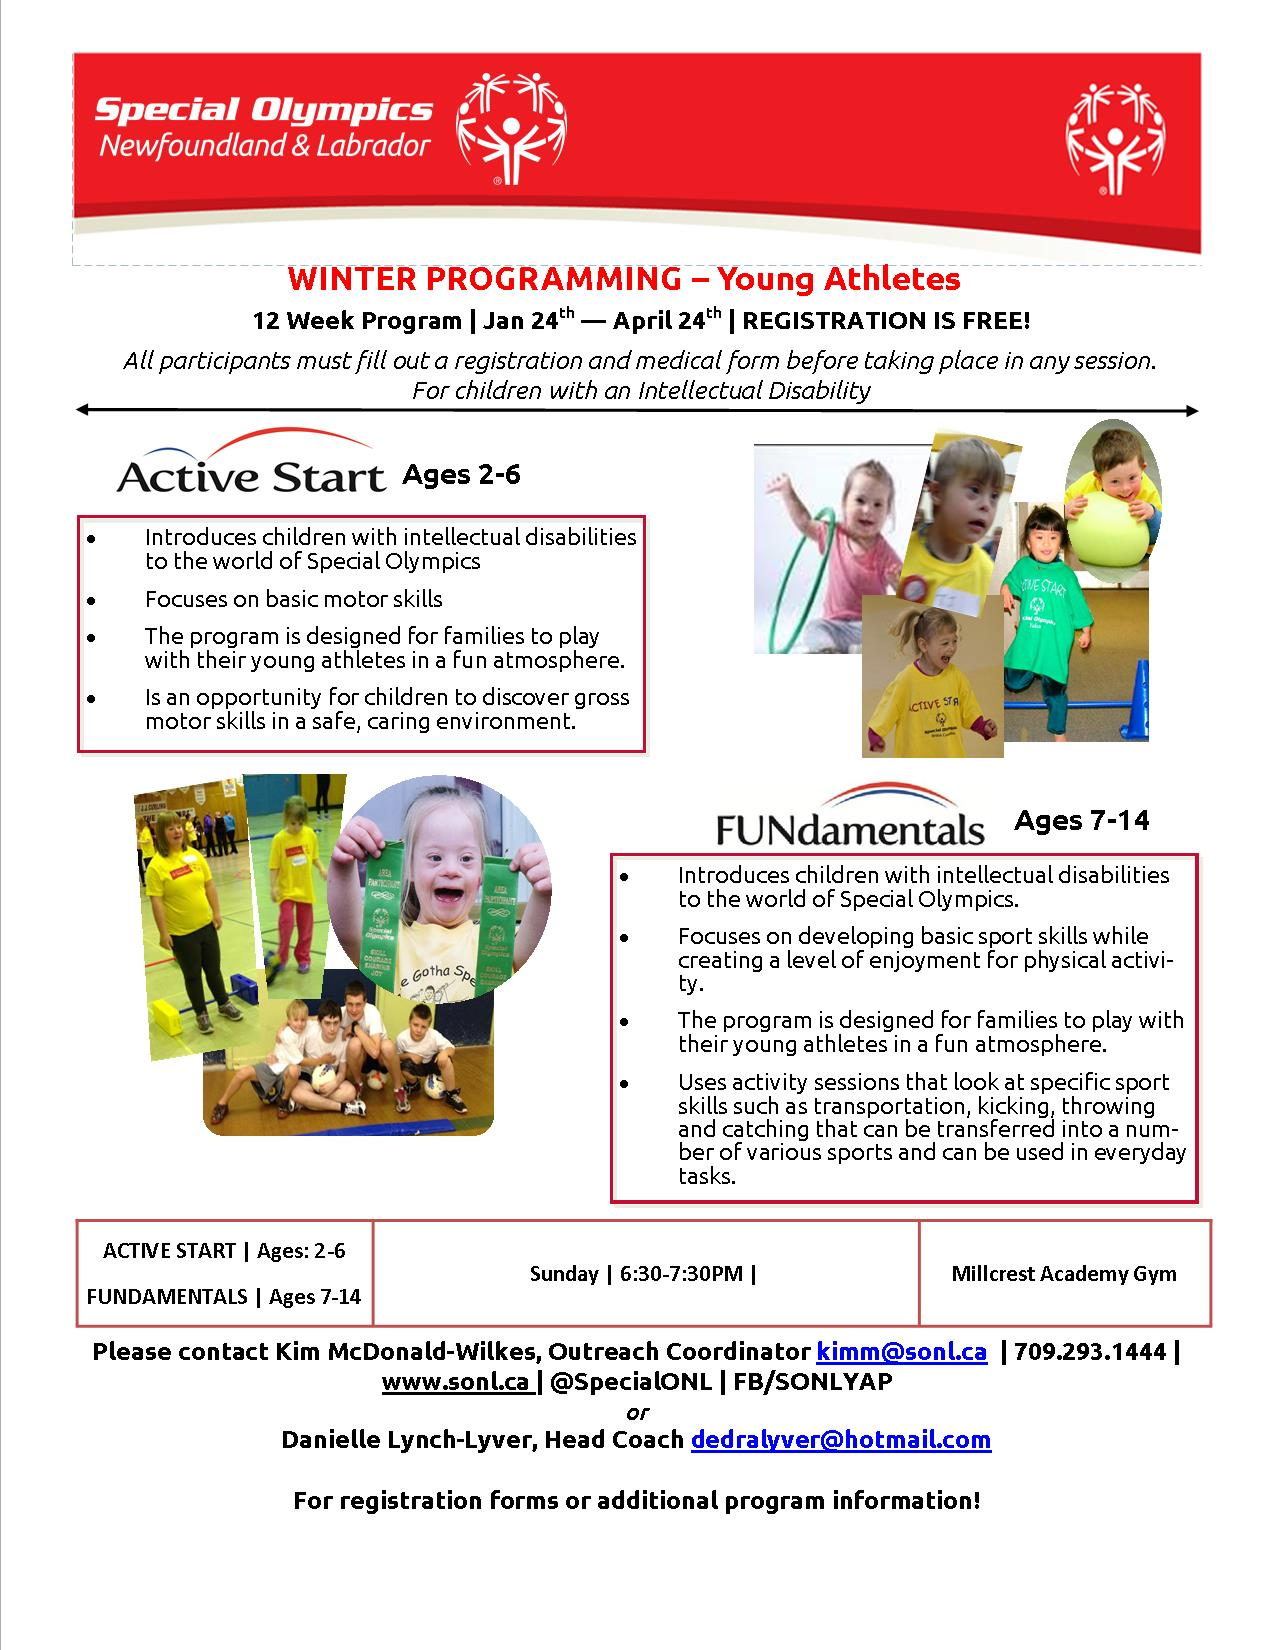 Winter Programming 2015 Flyer